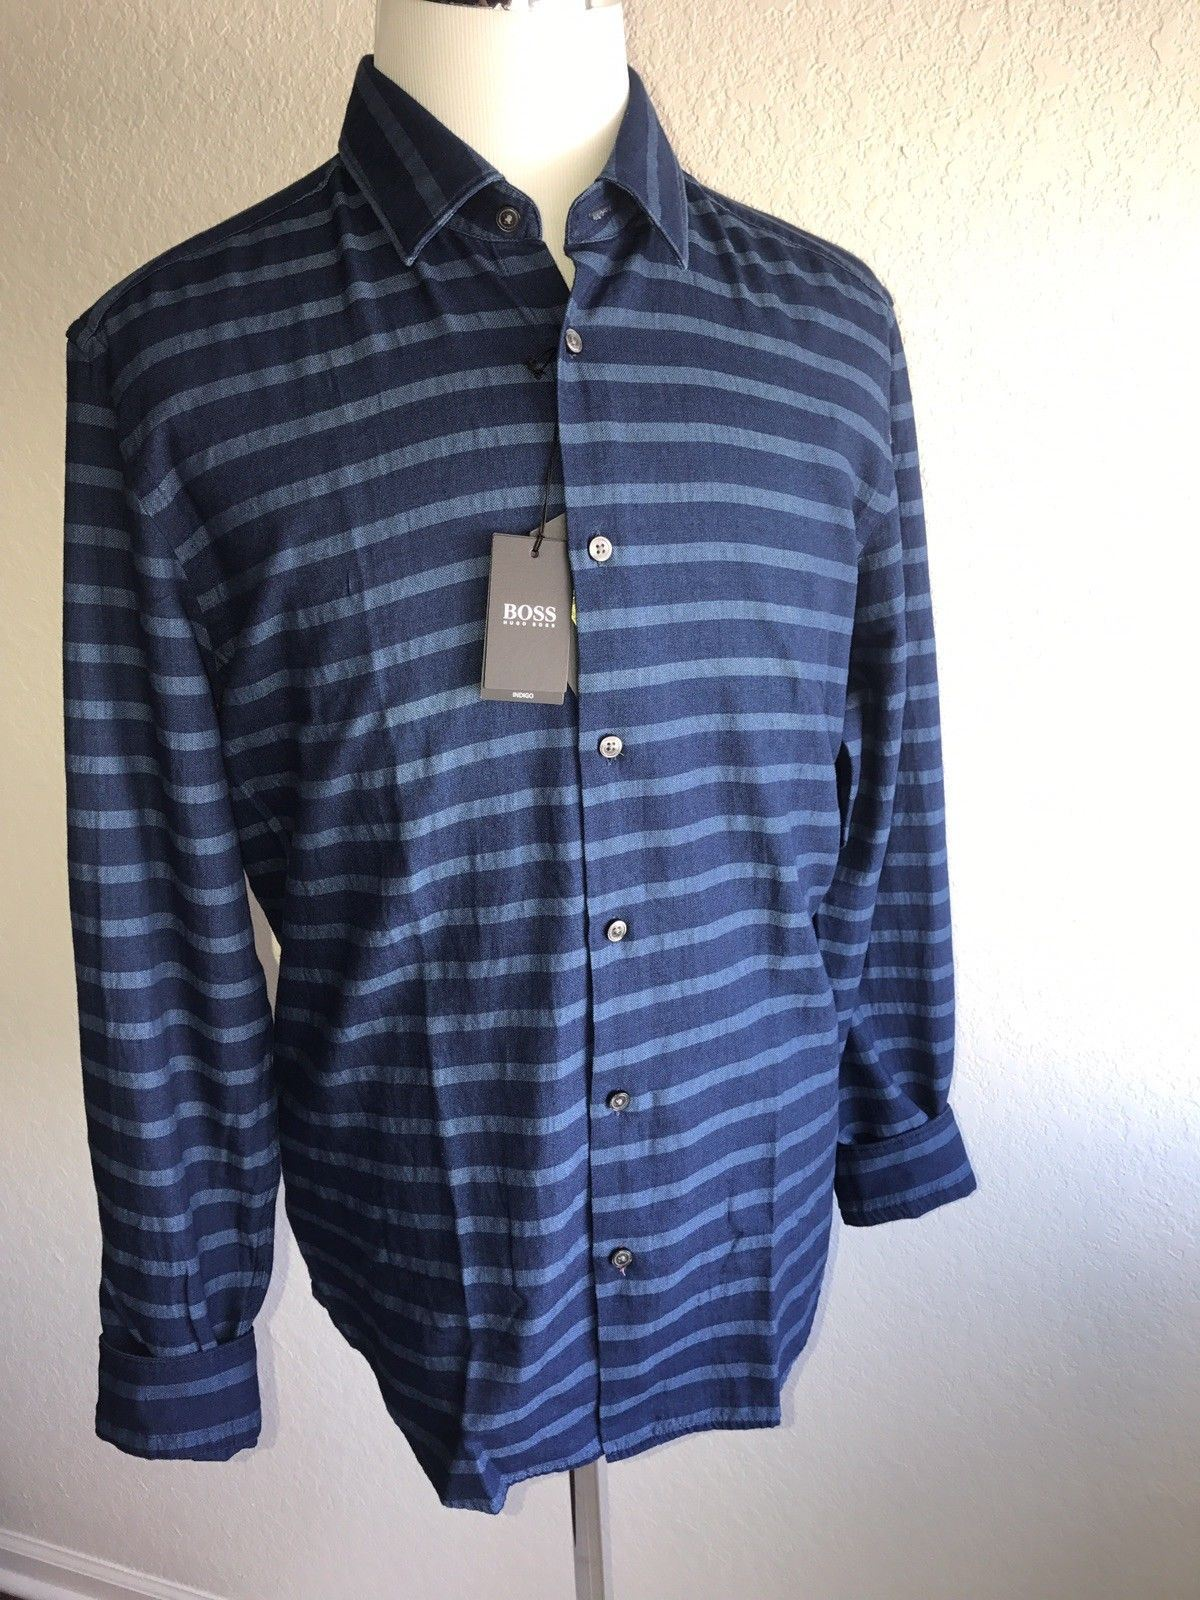 NWT $135 BOSS Hugo Boss Mens Modern Blue Regular Fit Dress Shirt XL